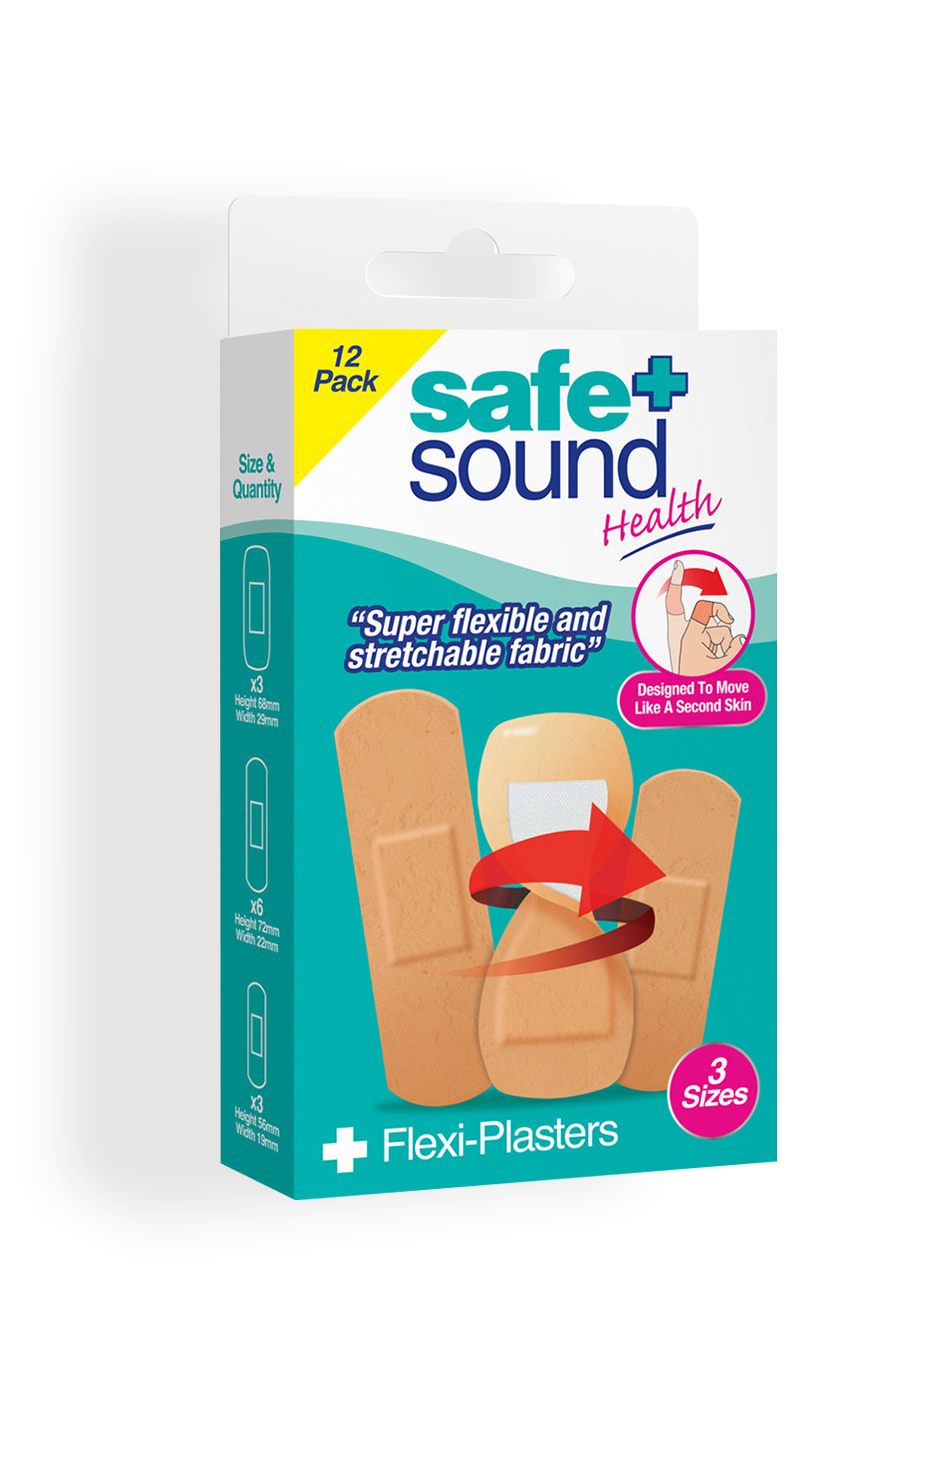 Safe and Sound Health Flexi-Plasters